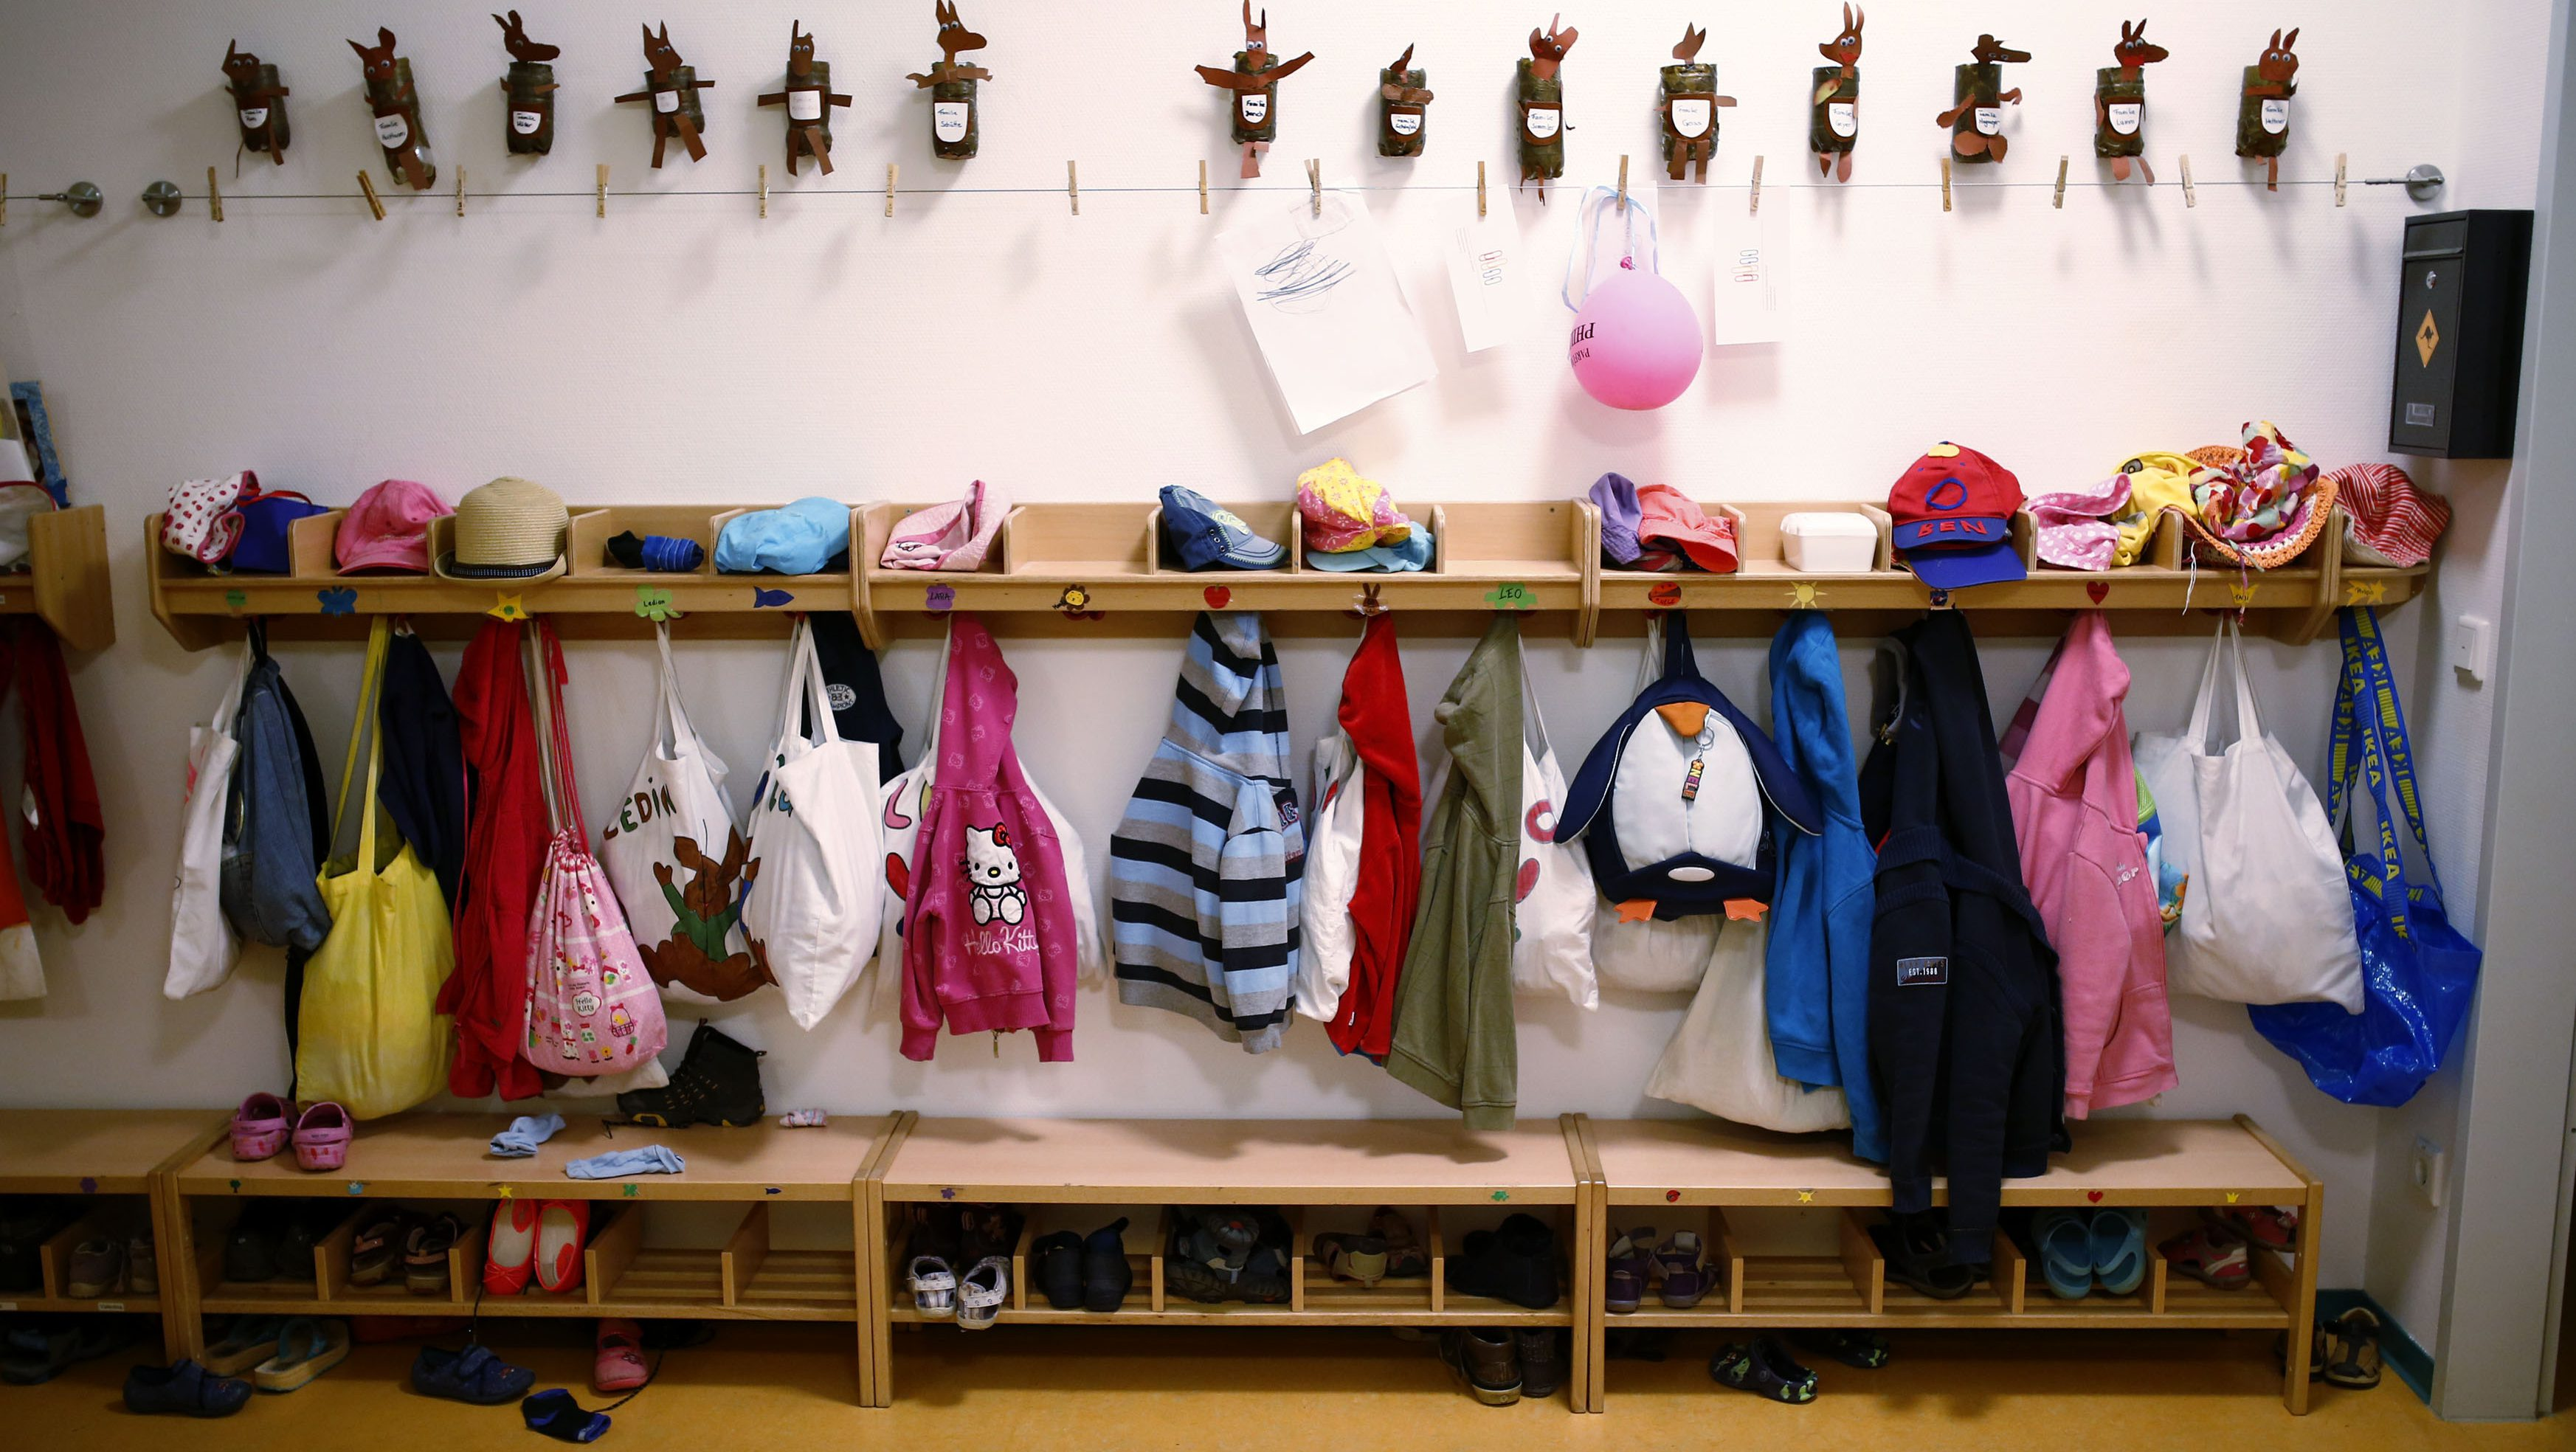 The wardrobe of one of four groups is seen inside the Kathinka-Platzhoff-Stiftung Kindergarten (Kathinka-Platzhoff-foundation kindergarden) in Hanau, 30km (18 miles) south of Frankfurt, July 16, 2013. From August 1, 2013, all children in Germany between the age of 1 and 3 will have a legal entitlement to a place at a kindergarten. The Kindergarten of the Kathinka-Platzhoff-Stiftung is one of few which hosts children between the age of six month and six years.  Picture taken July 16. REUTERS/Kai Pfaffenbach (GERMANY - Tags: POLITICS BUSINESS EMPLOYMENT SOCIETY EDUCATION) - RTX11YE3